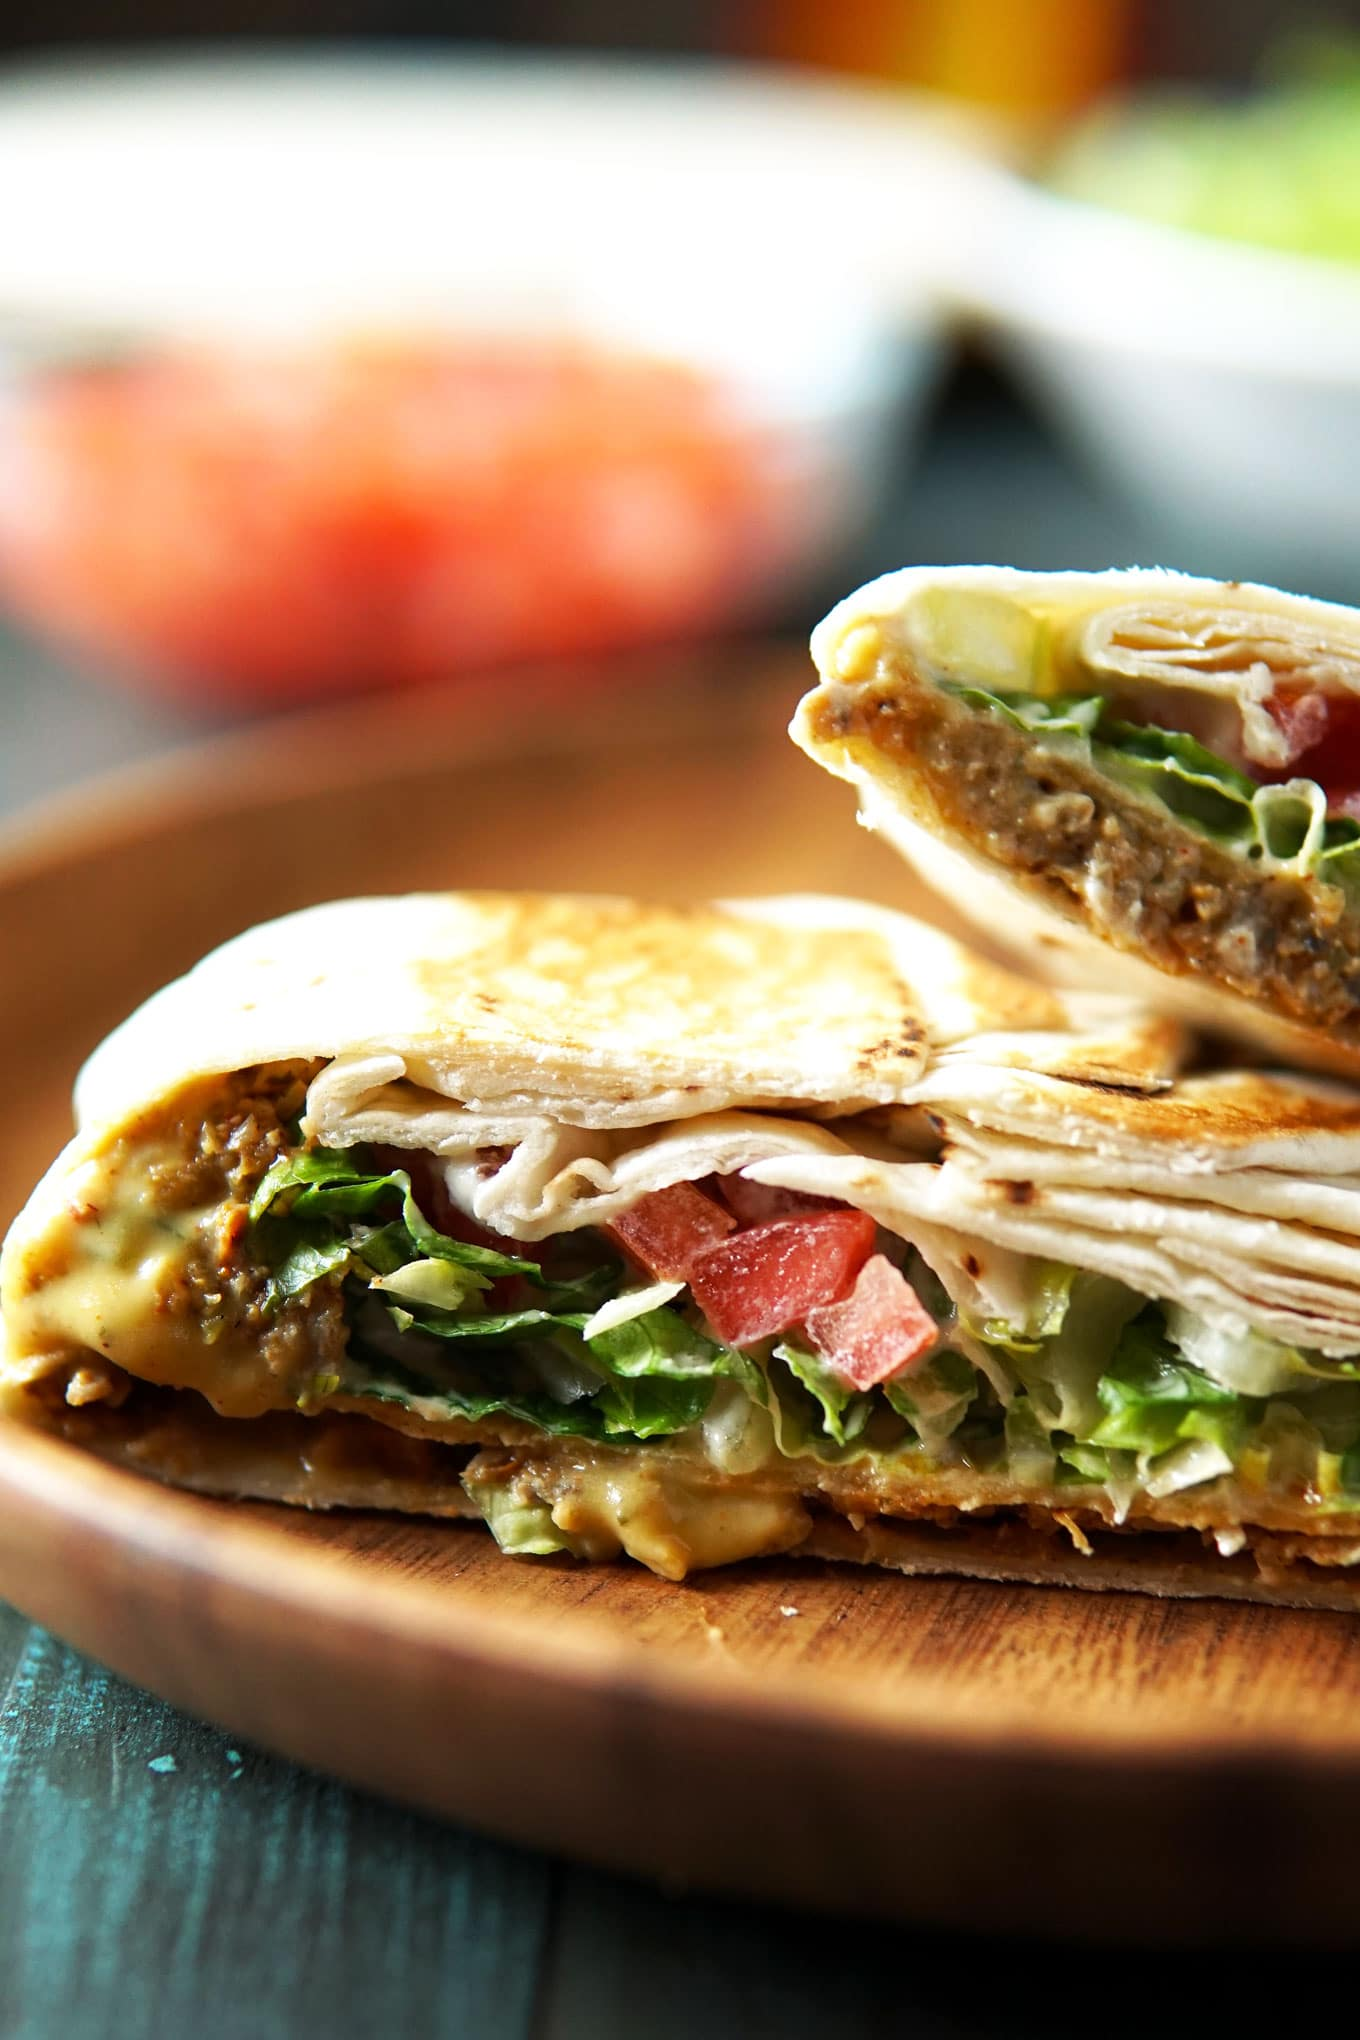 Close-up of vegan crunch wrapsupreme cut in half on a plate